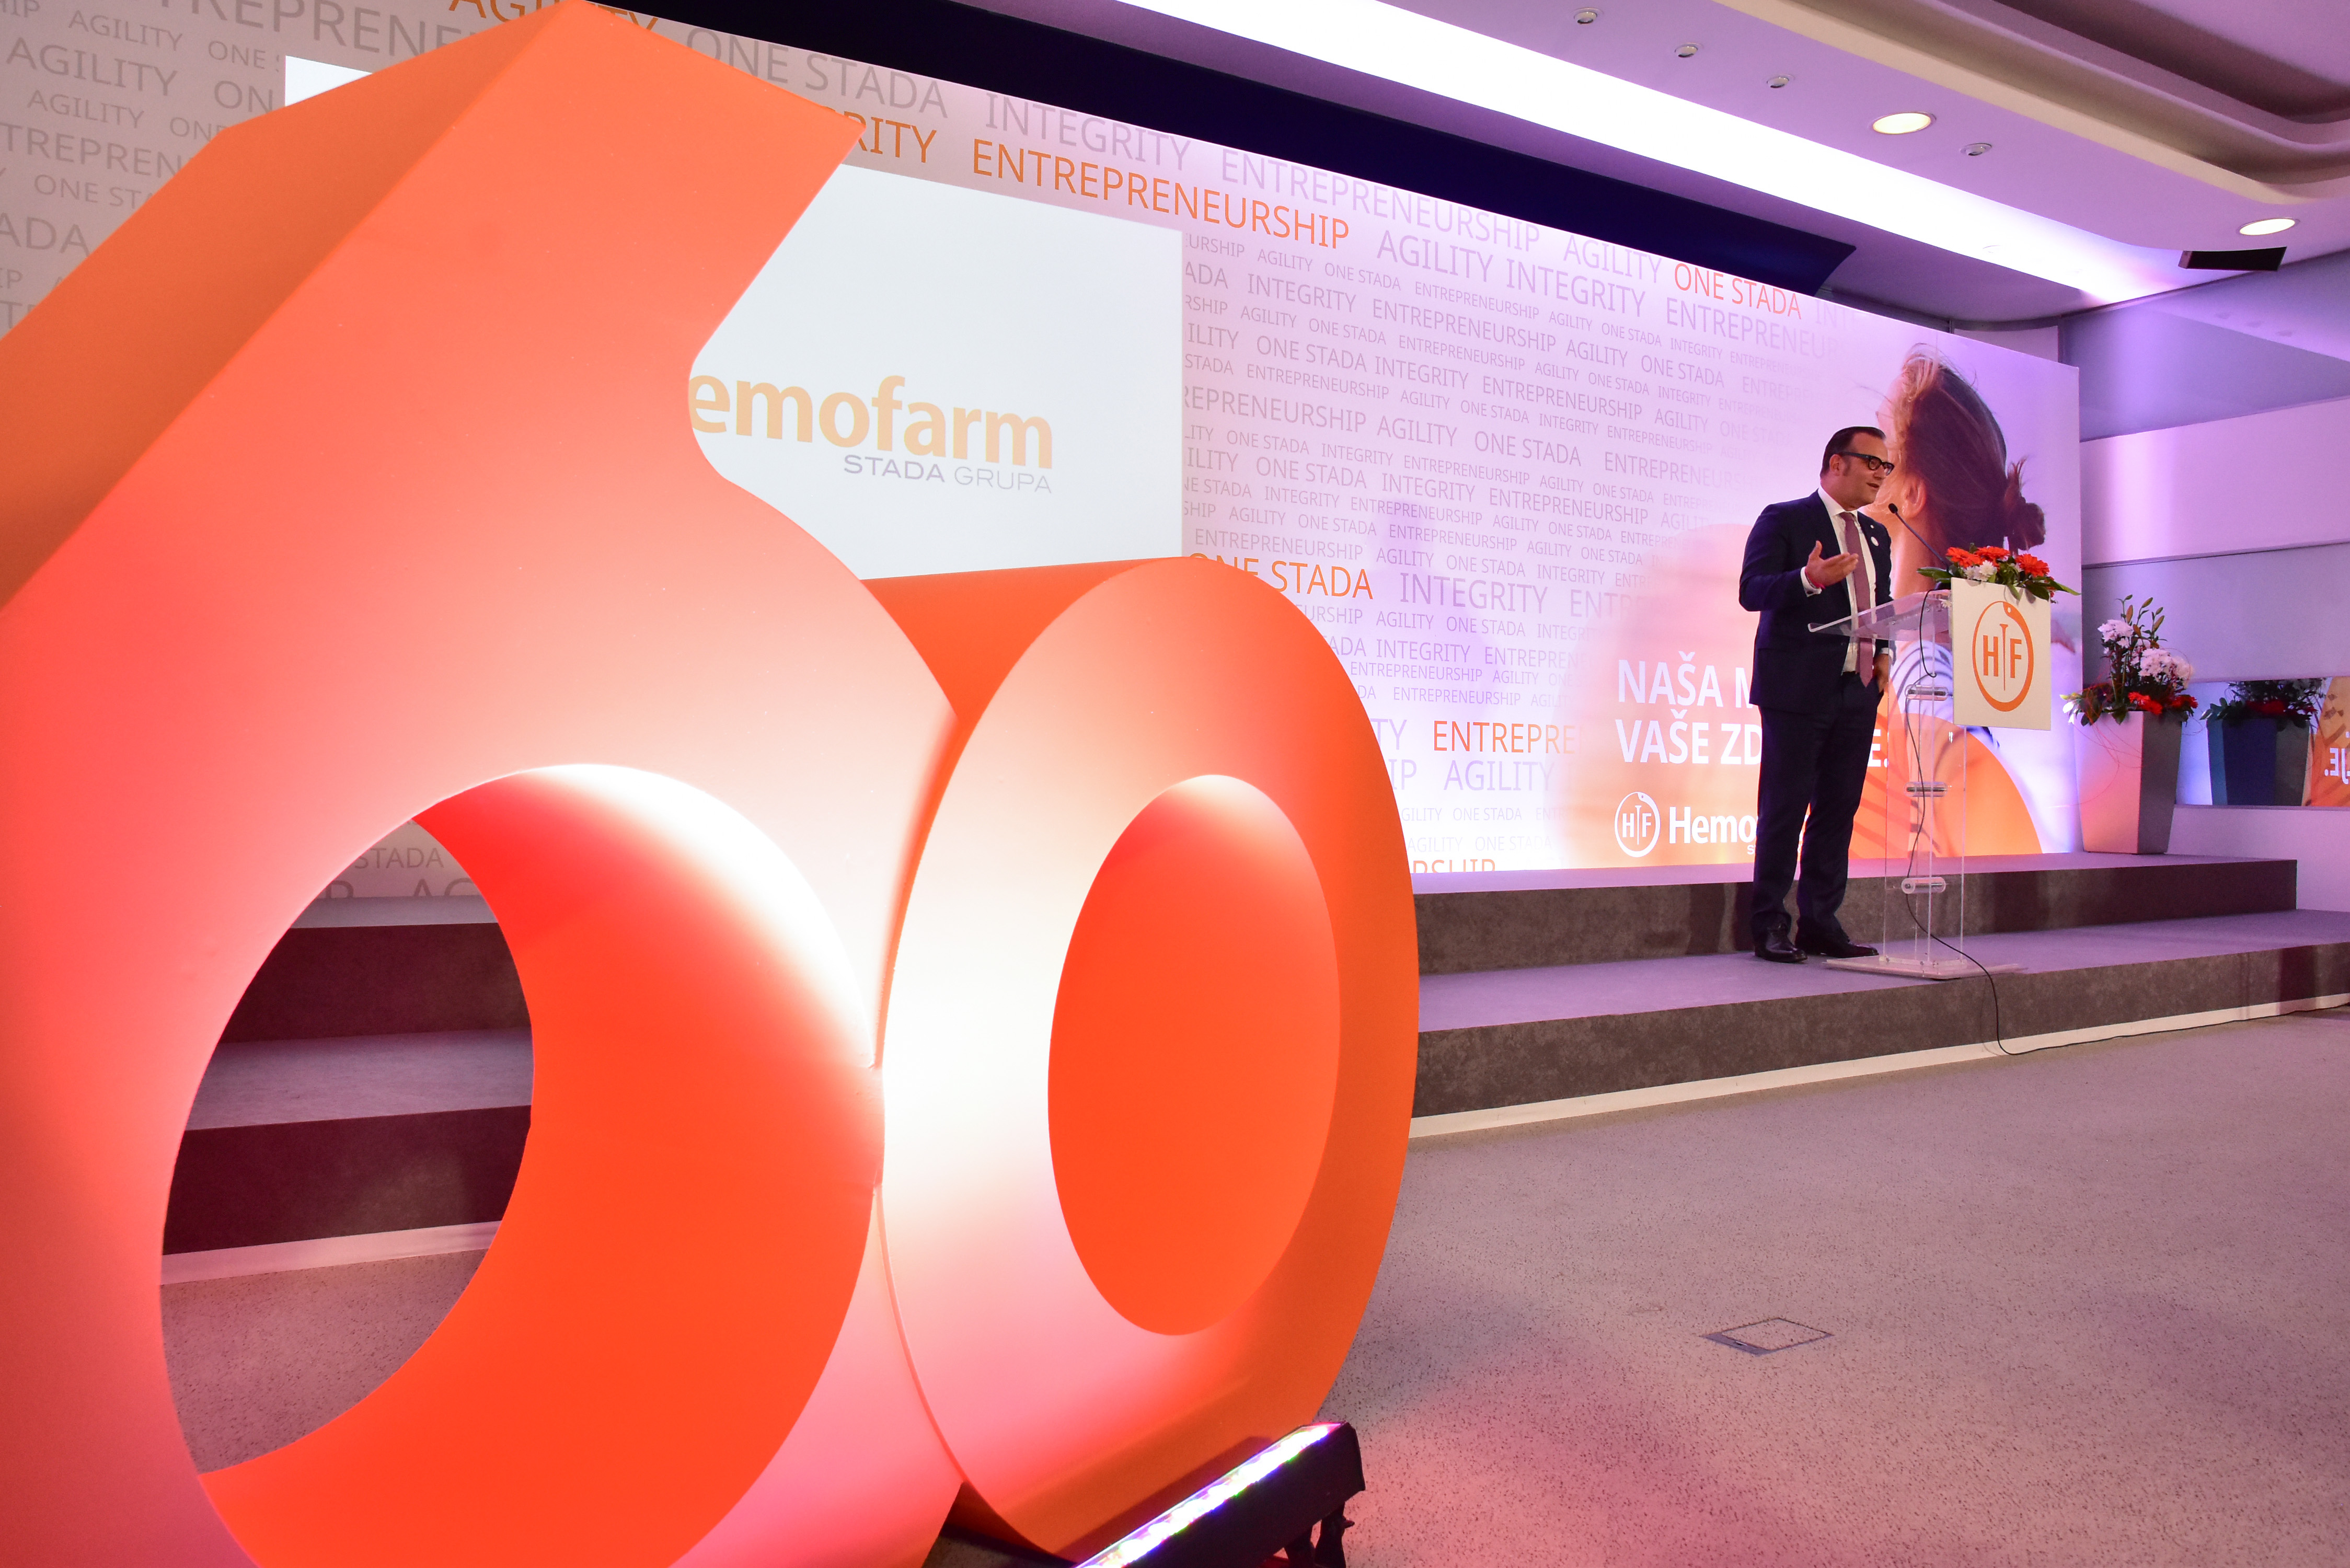 Hemofarm Marks 59 Years of Successful Operation